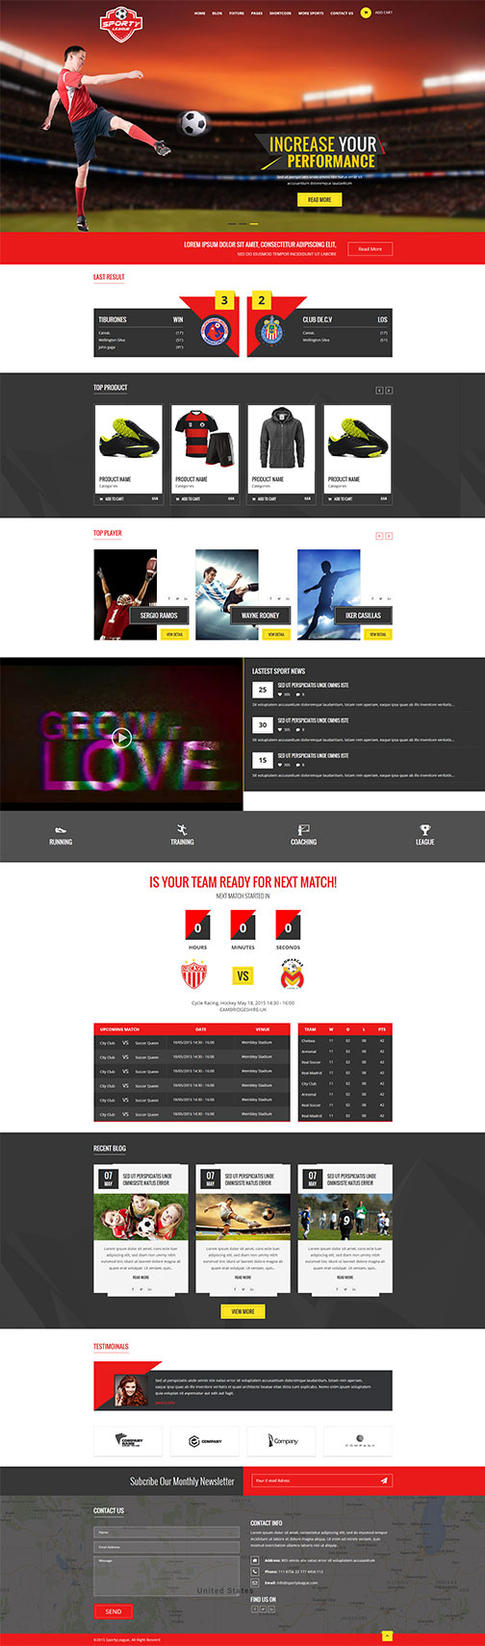 925 x 375 png 94kb, tapike template: simple responsive blogger template tapike